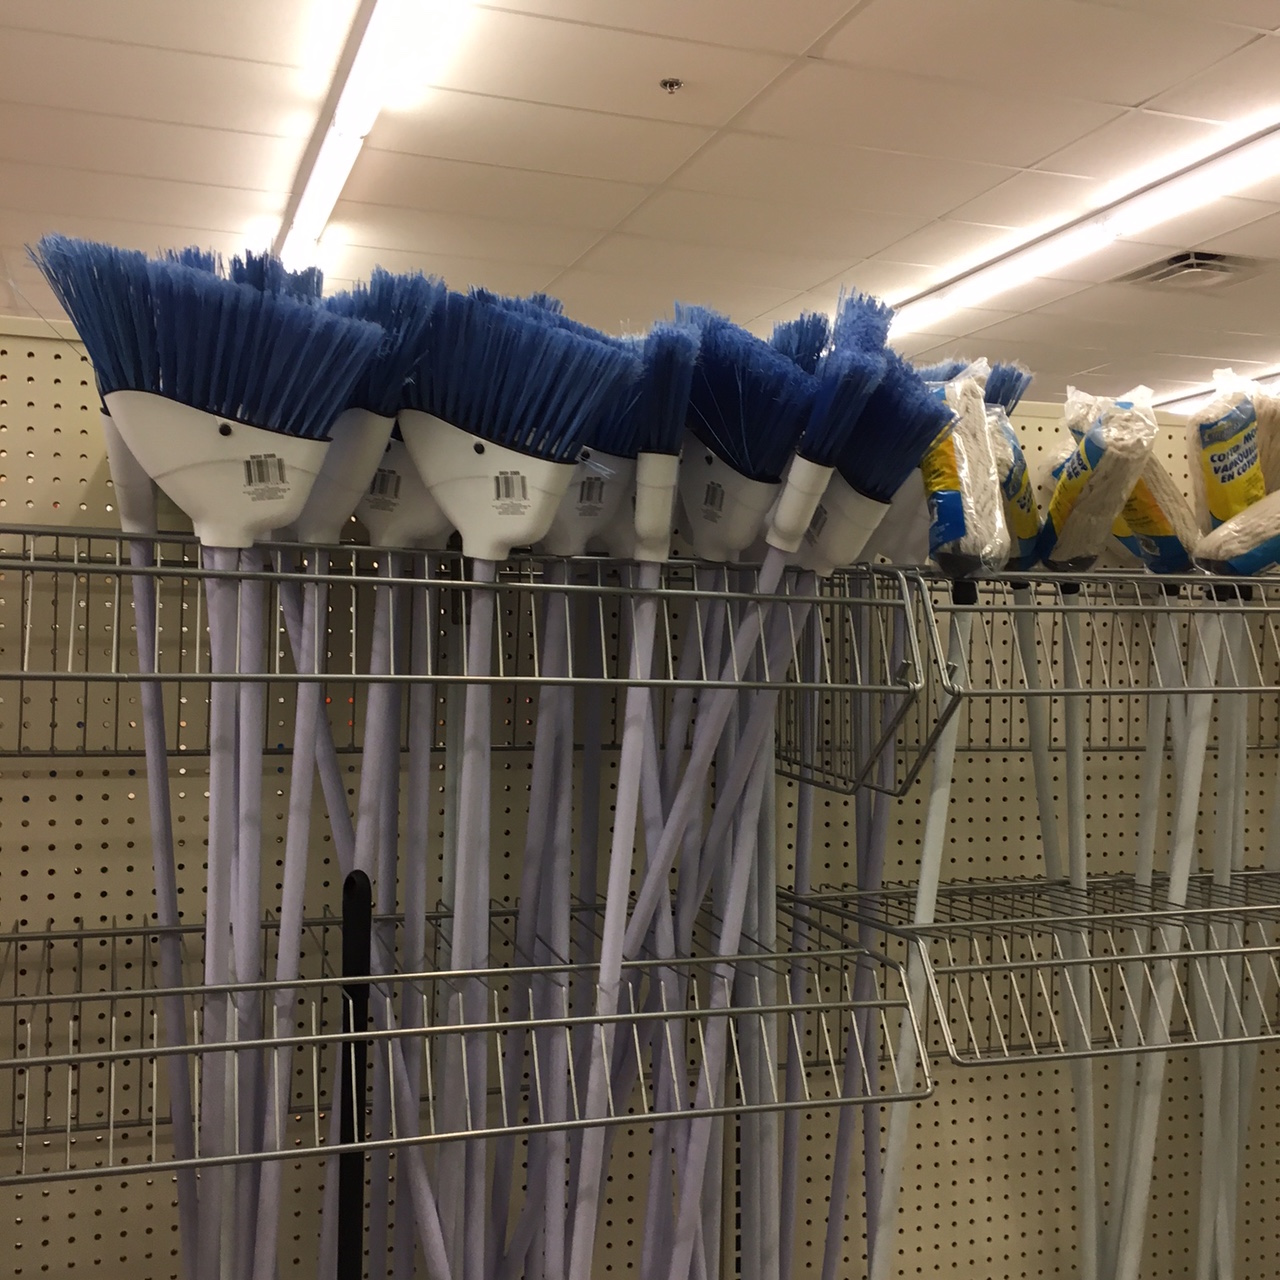 brooms at Dollar Tree